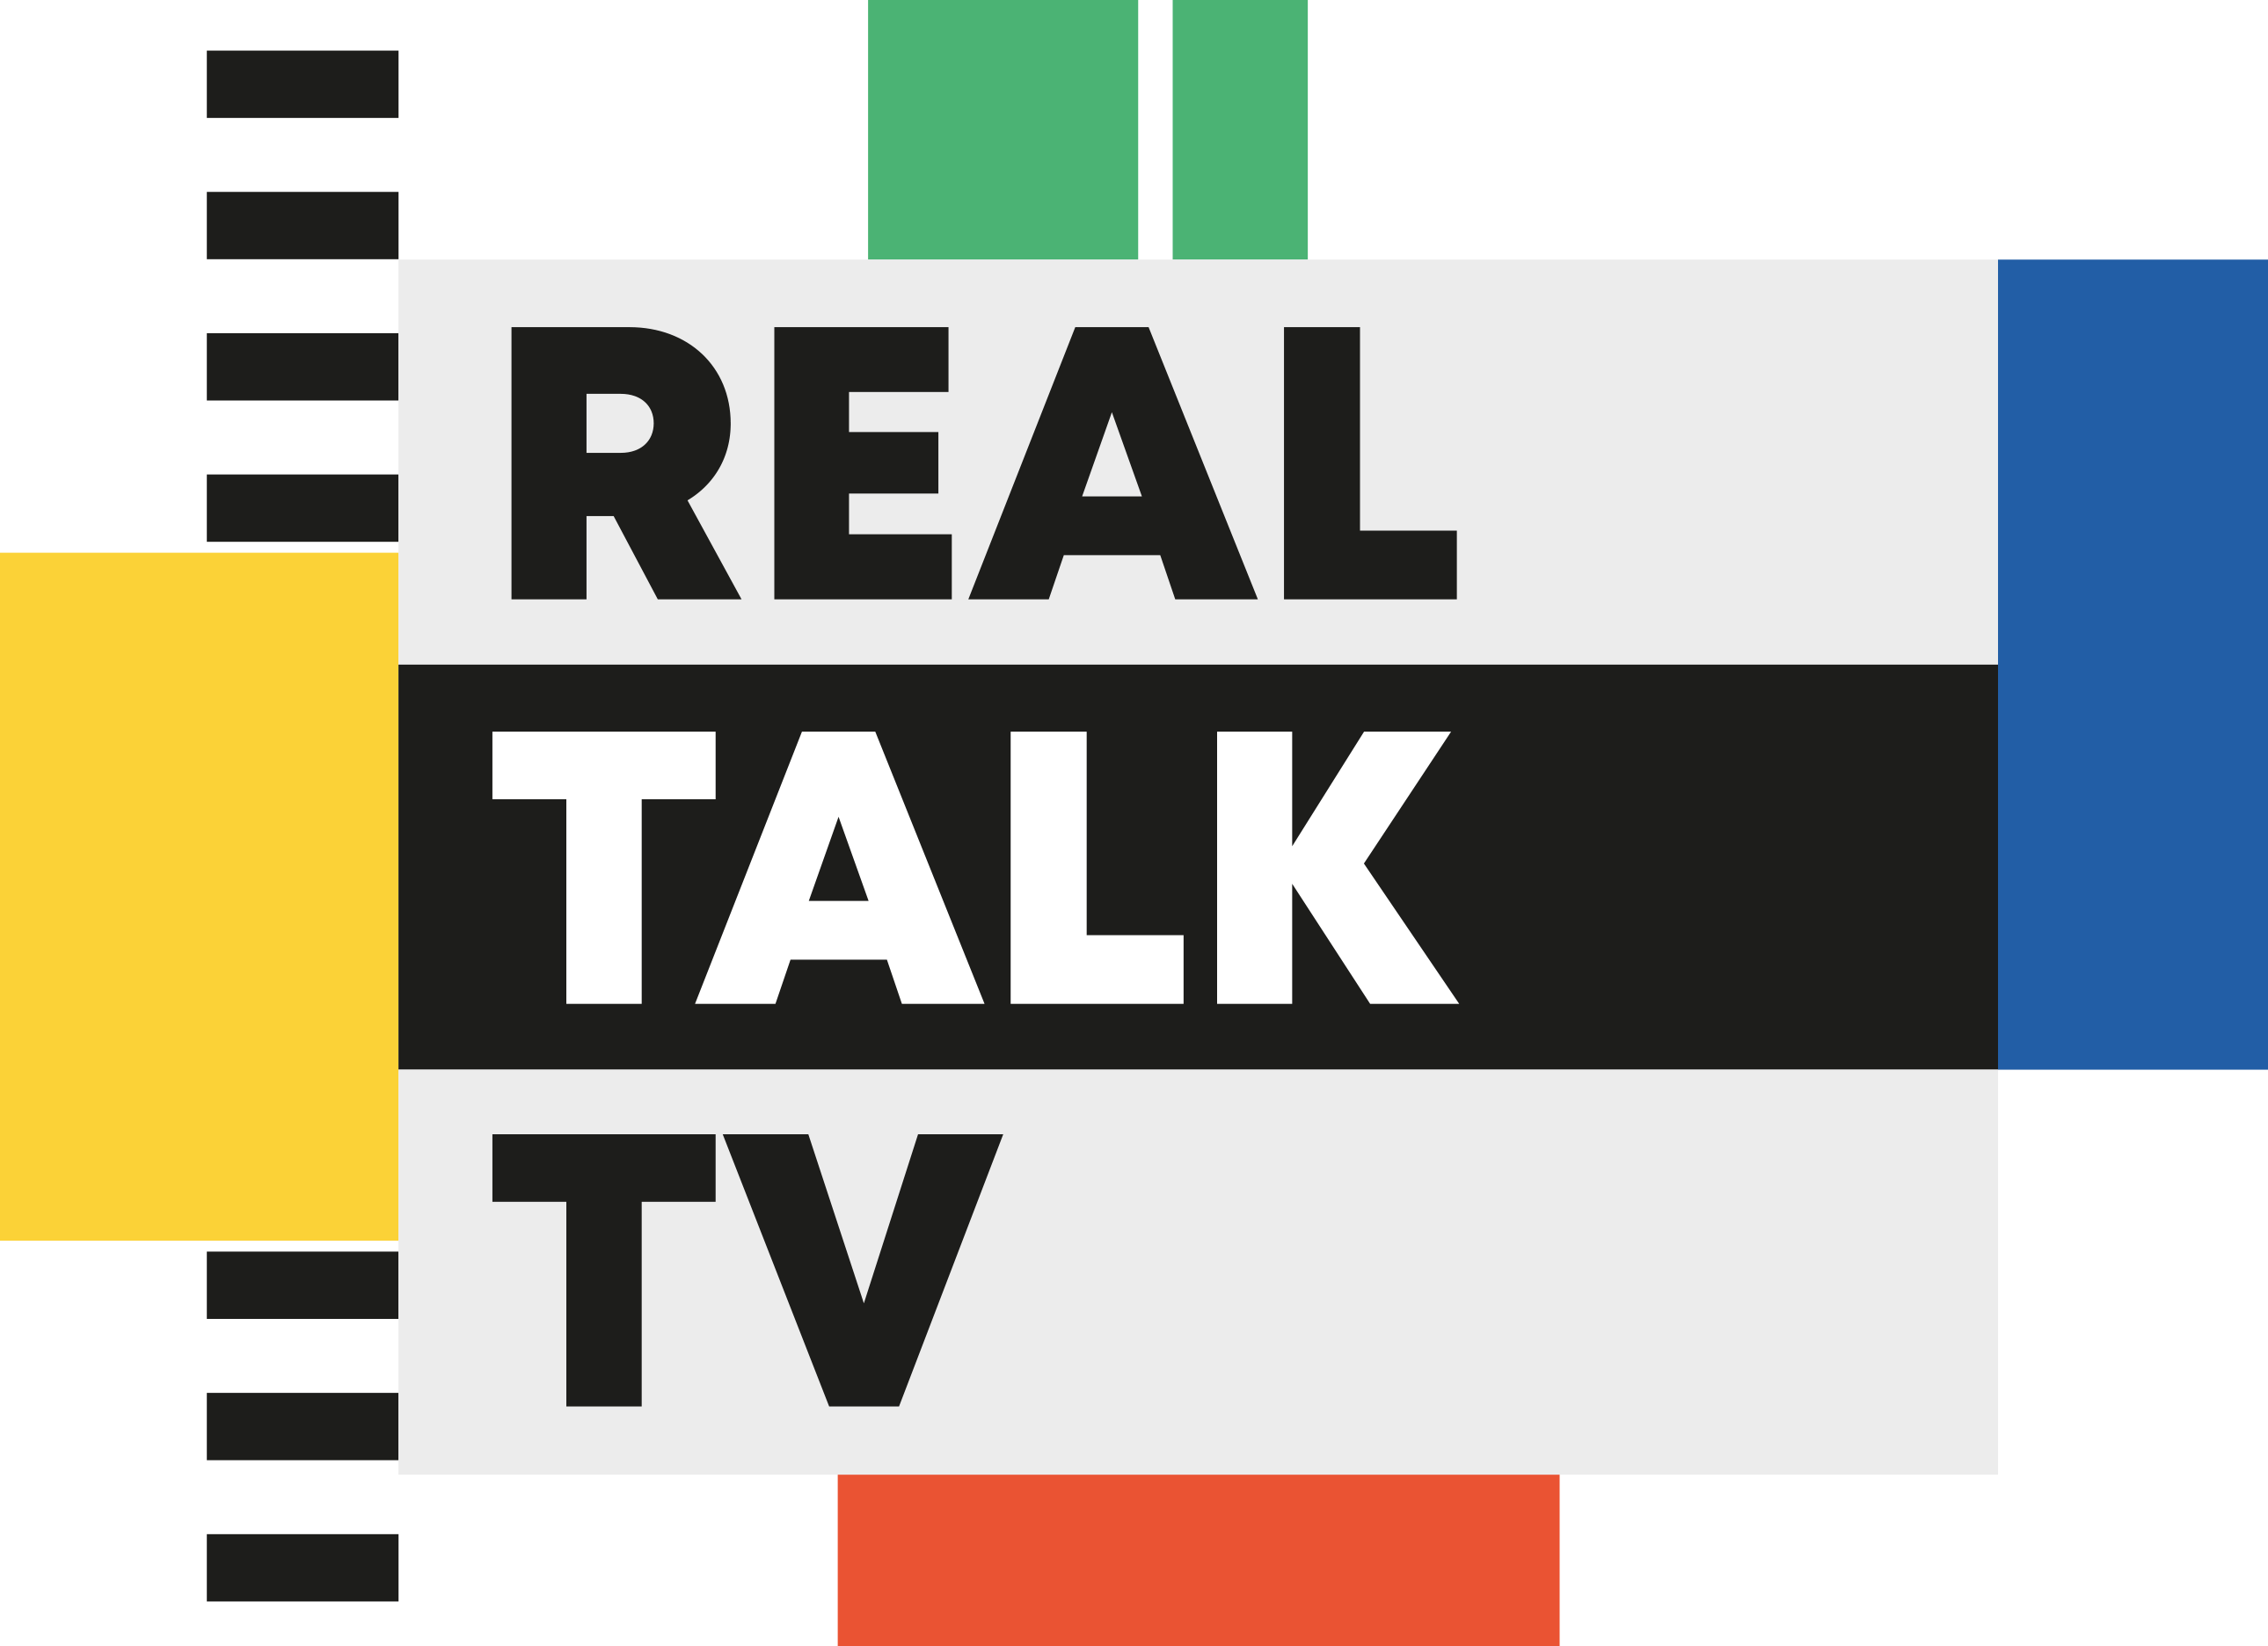 Real Talk TV